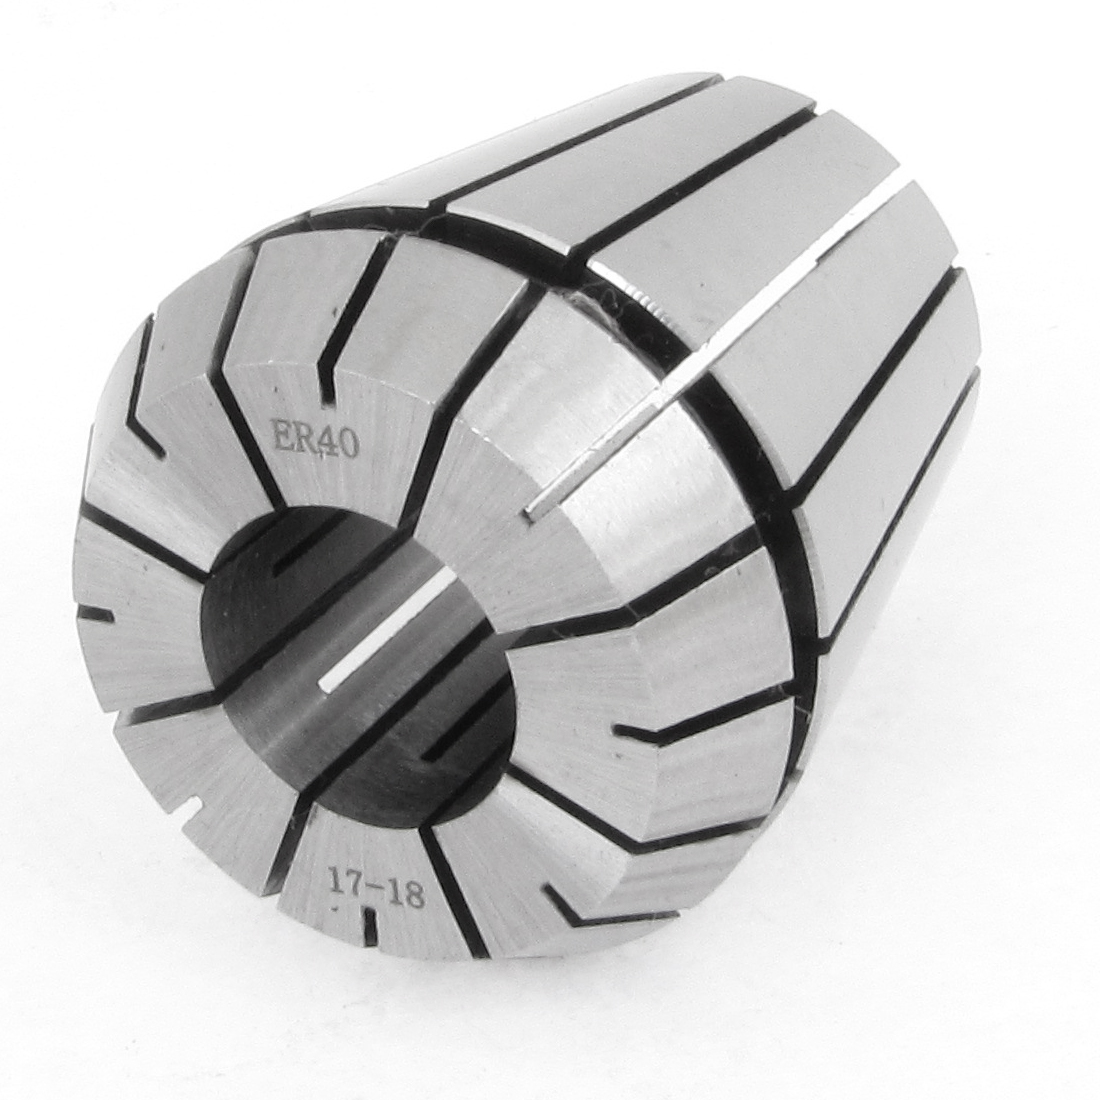 Clamping Range 17-18mm ER40 Precision Spring Collet Reaming Part